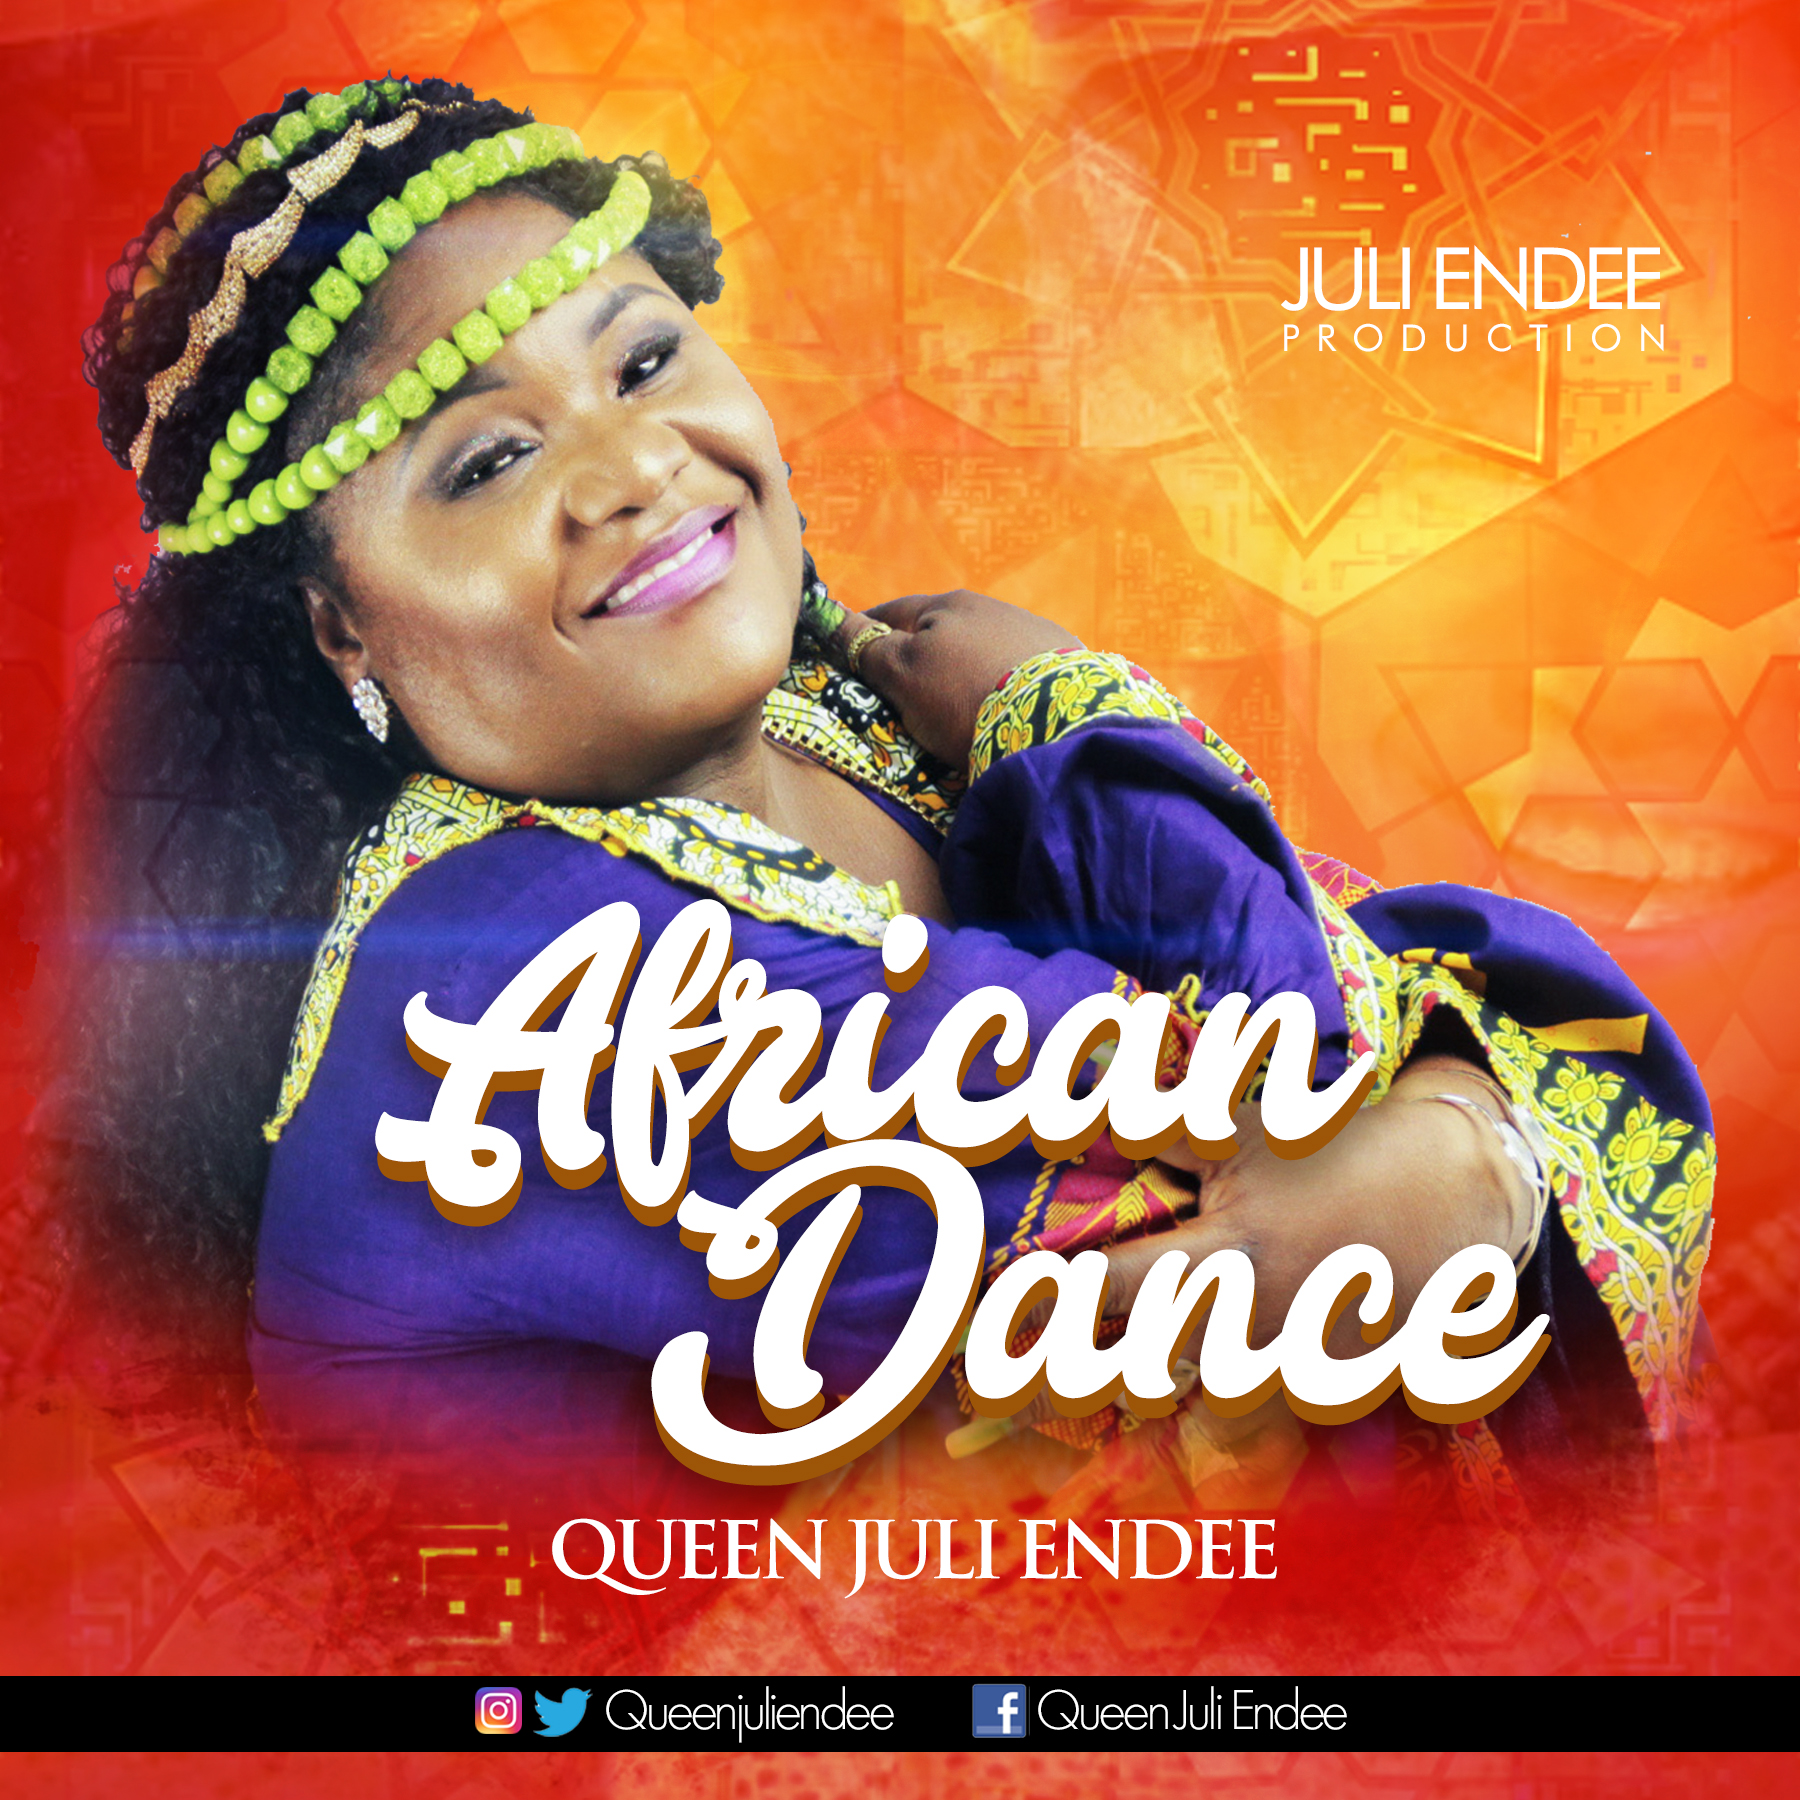 VIDEO/AUDIO: Queen Juli Endee – African Dance